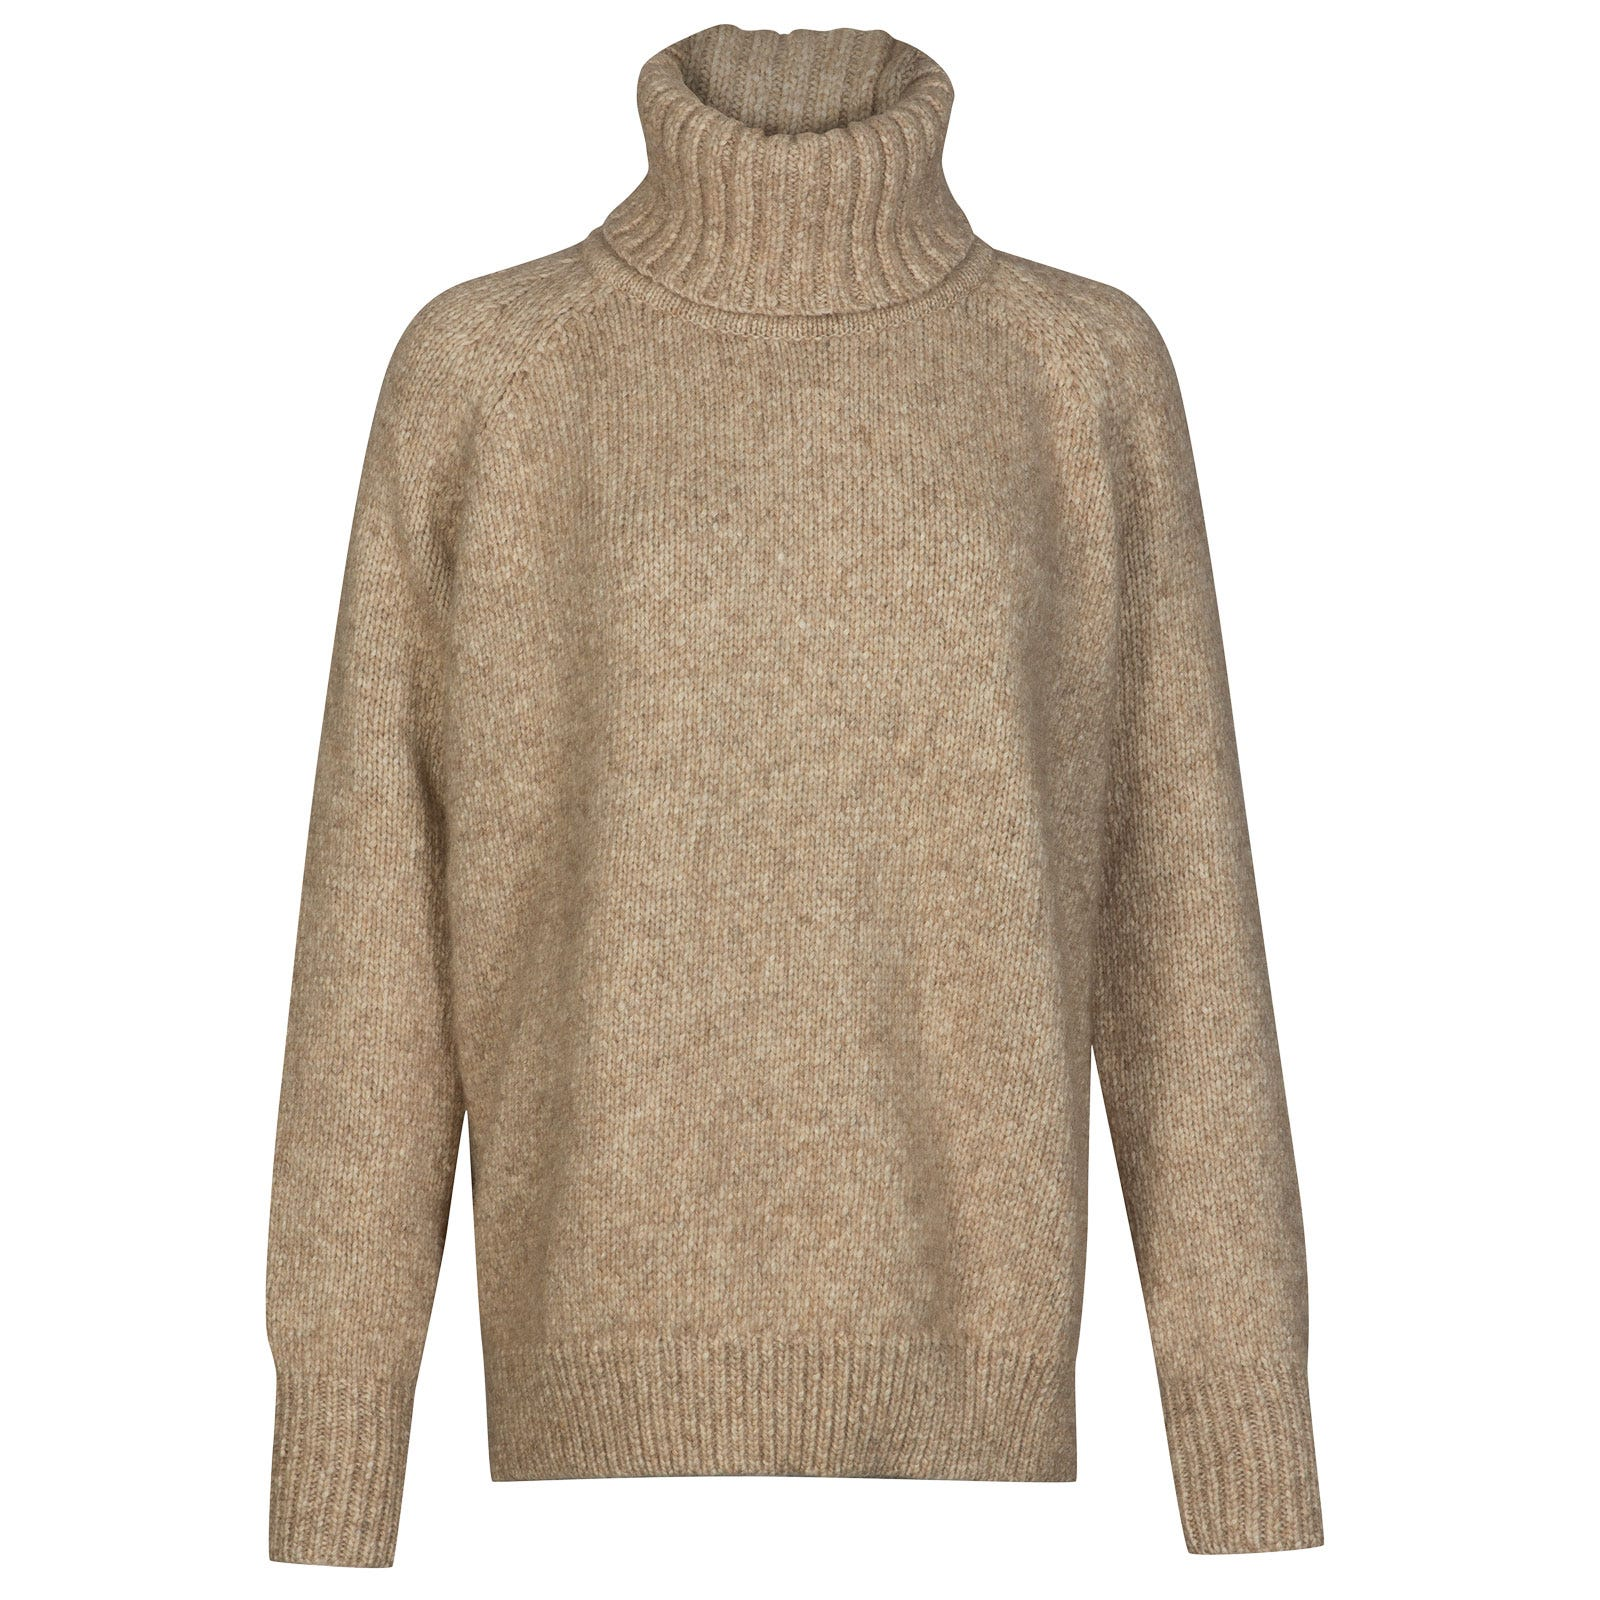 John Smedley Morar Alpaca, Wool & Cotton Sweater in Camel-XL